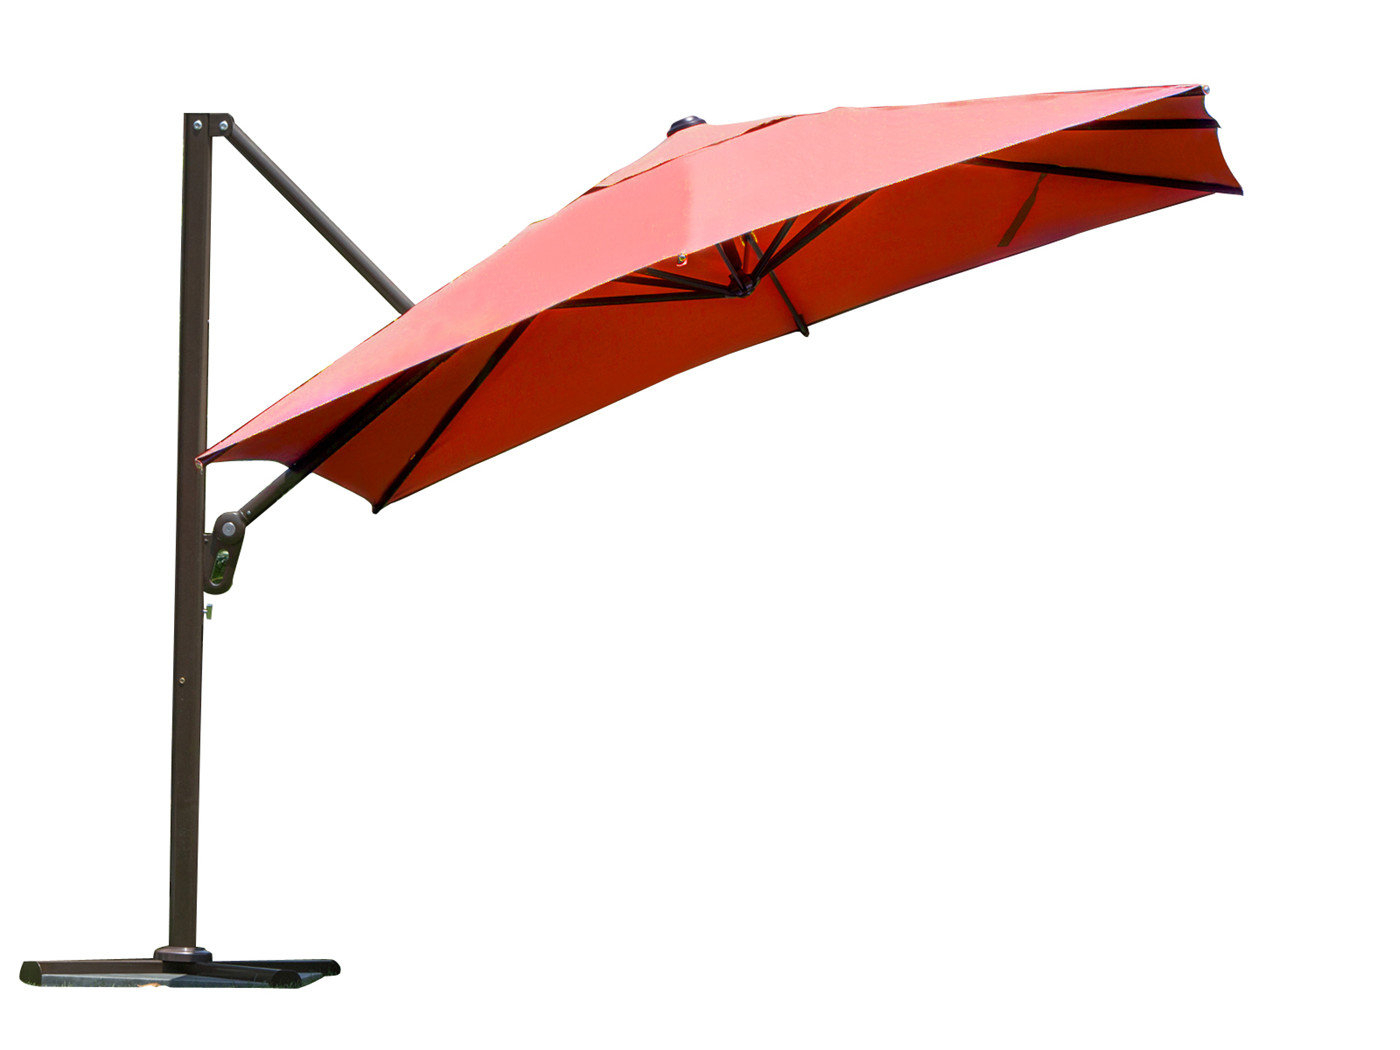 2019 9' Square Cantilever Umbrella Throughout Windell Square Cantilever Umbrellas (Gallery 7 of 20)